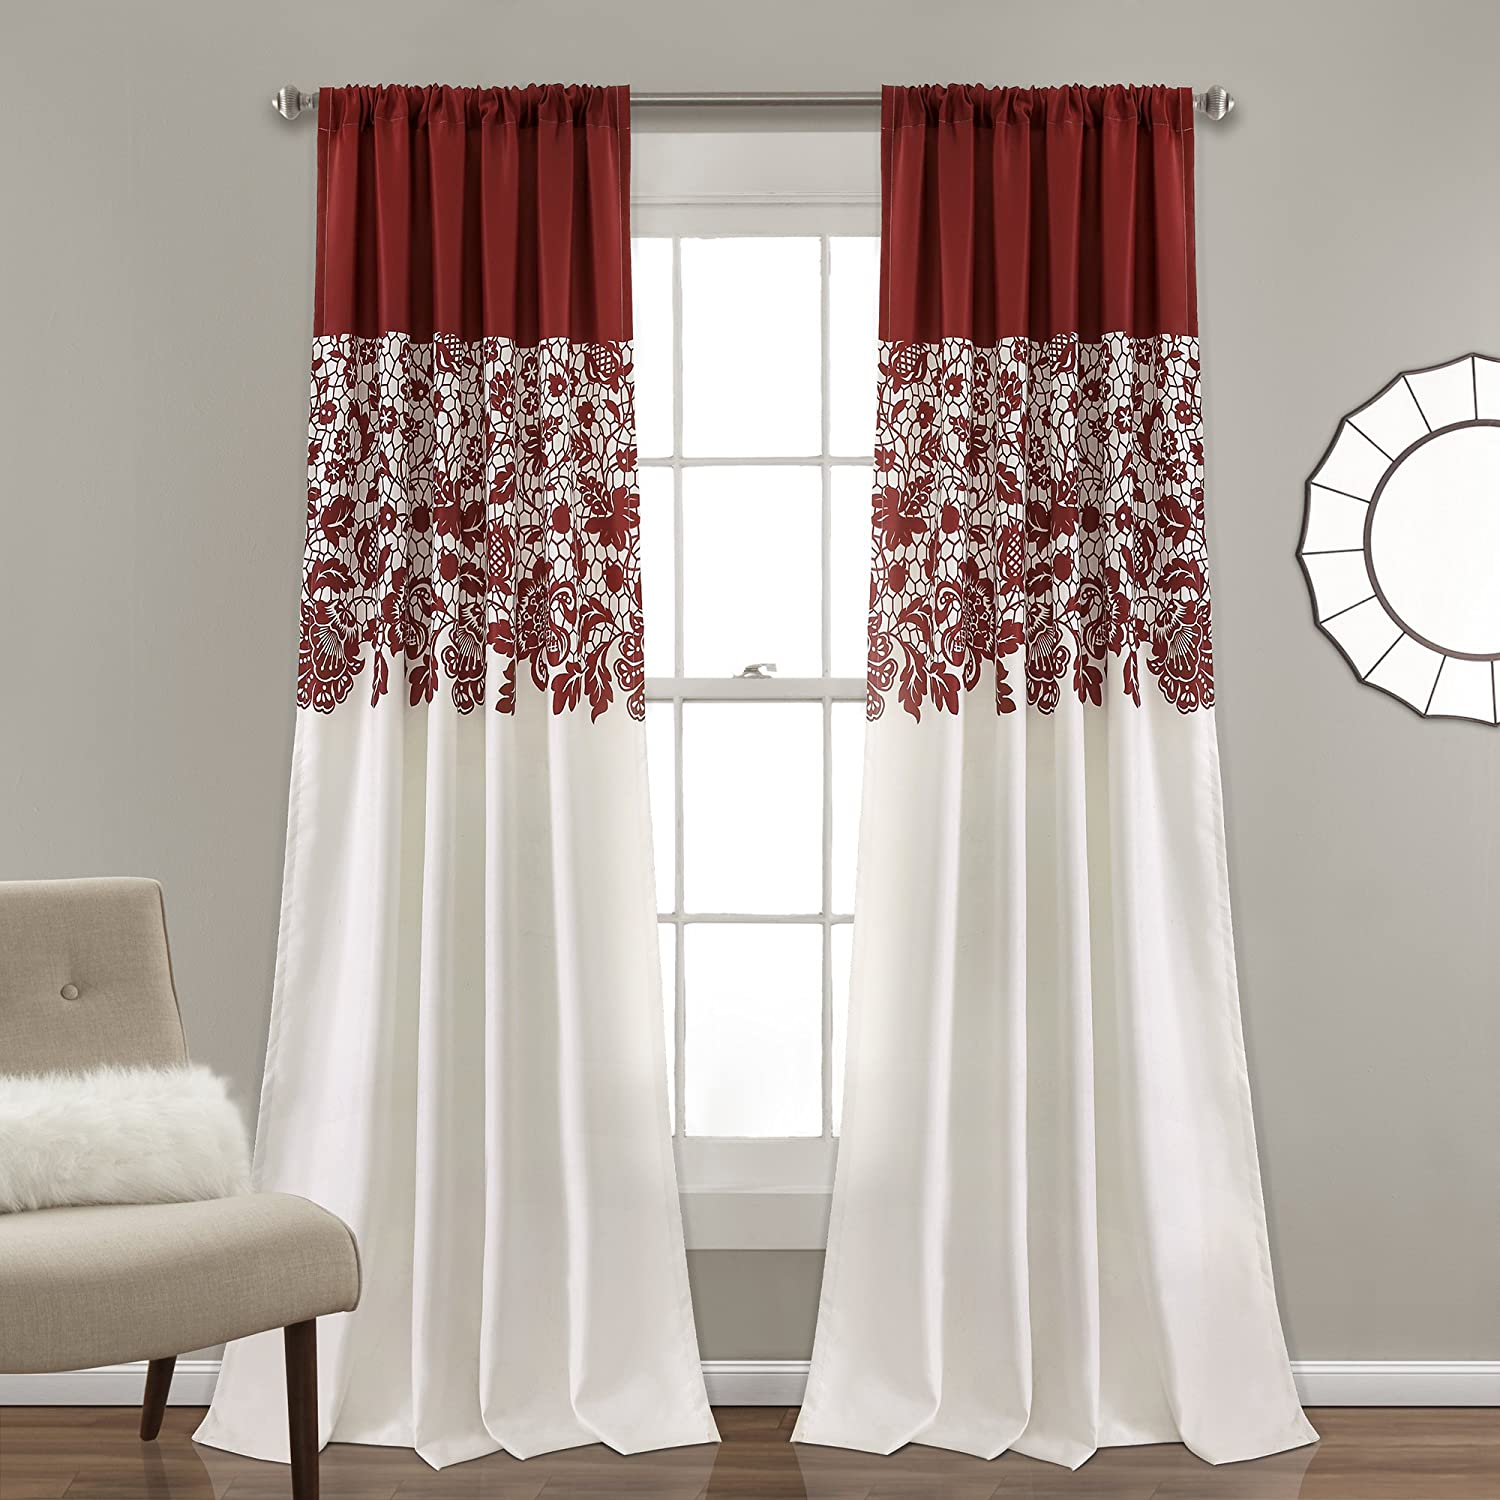 "Lush Decor Estate Garden Print Curtains Room Darkening Window Panel Set for Living, Dining, Bedroom (Pair), 84"" x 52"", Red"